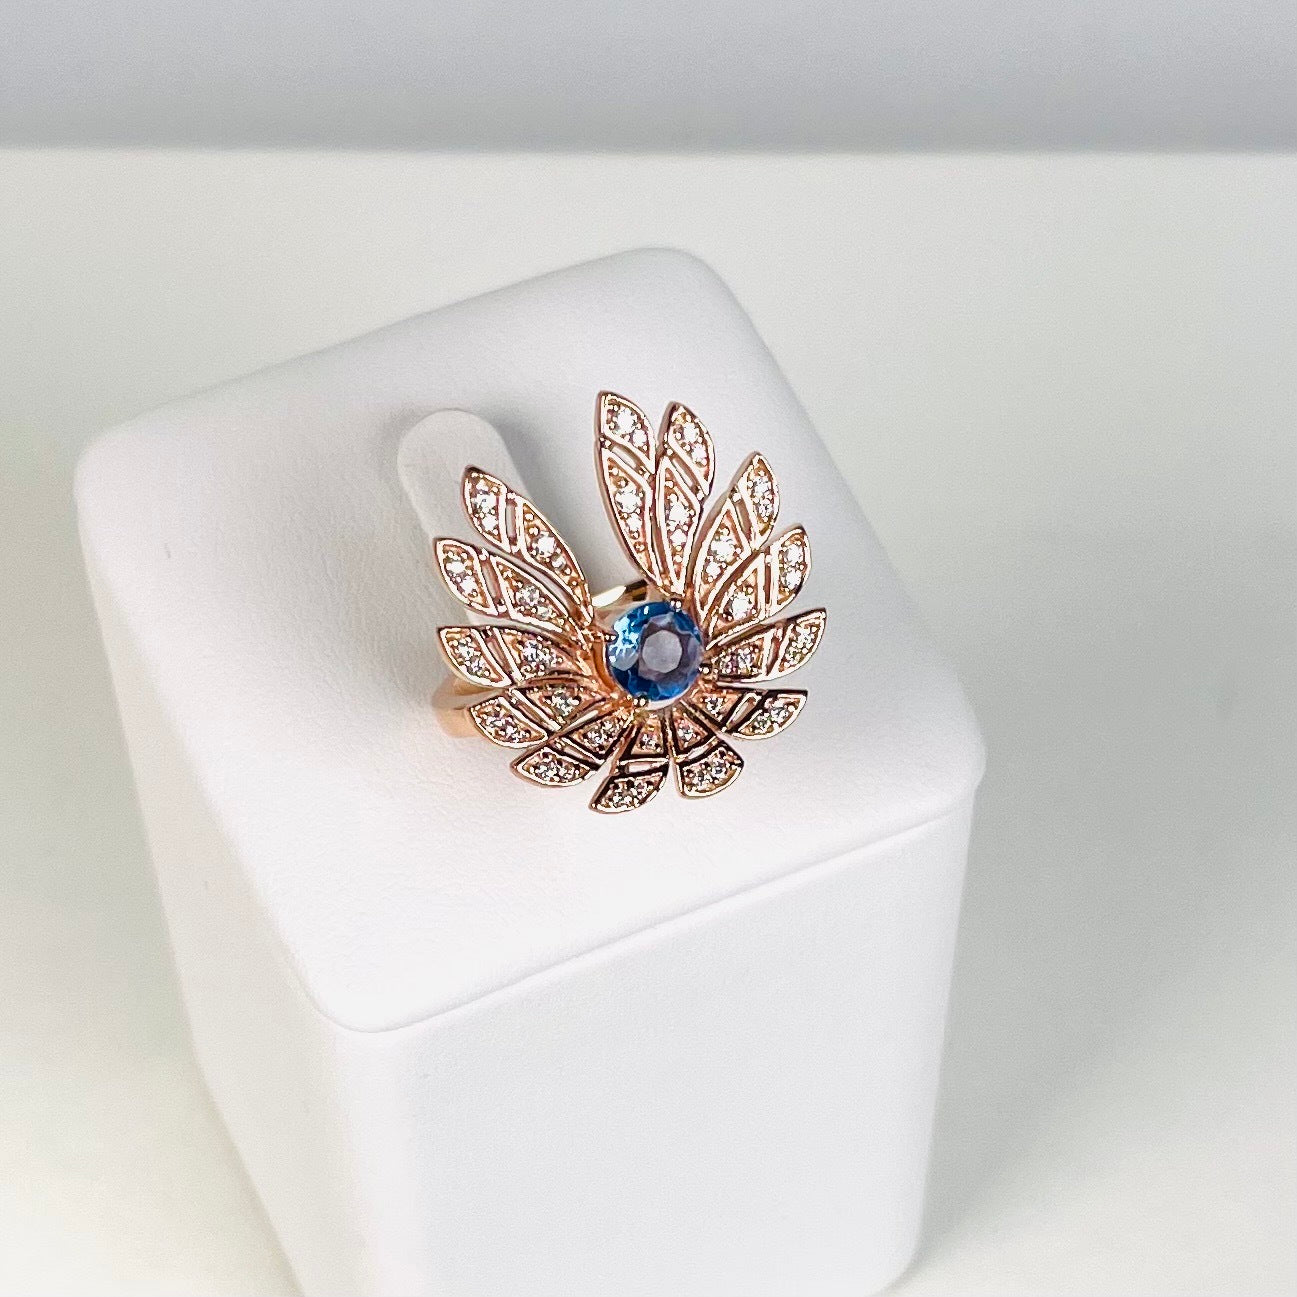 TRIBE SPECIAL PEACH MOONSTONE DRAGONFLY PENDANT